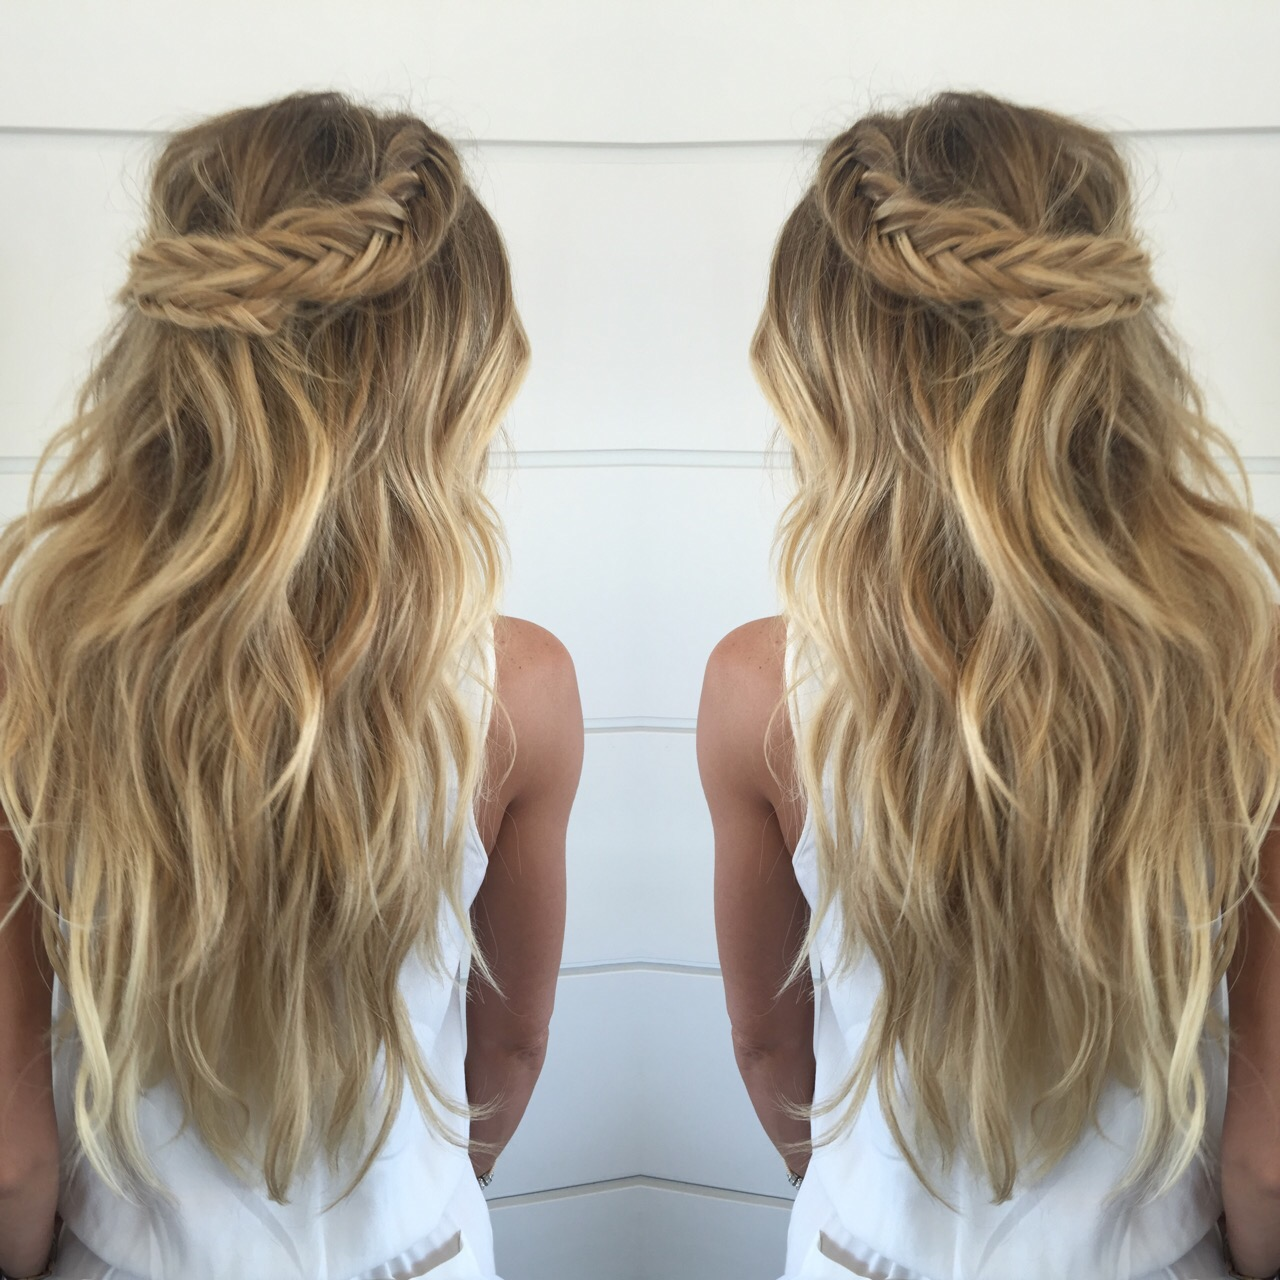 Stunning Braids with Cashmere Hair